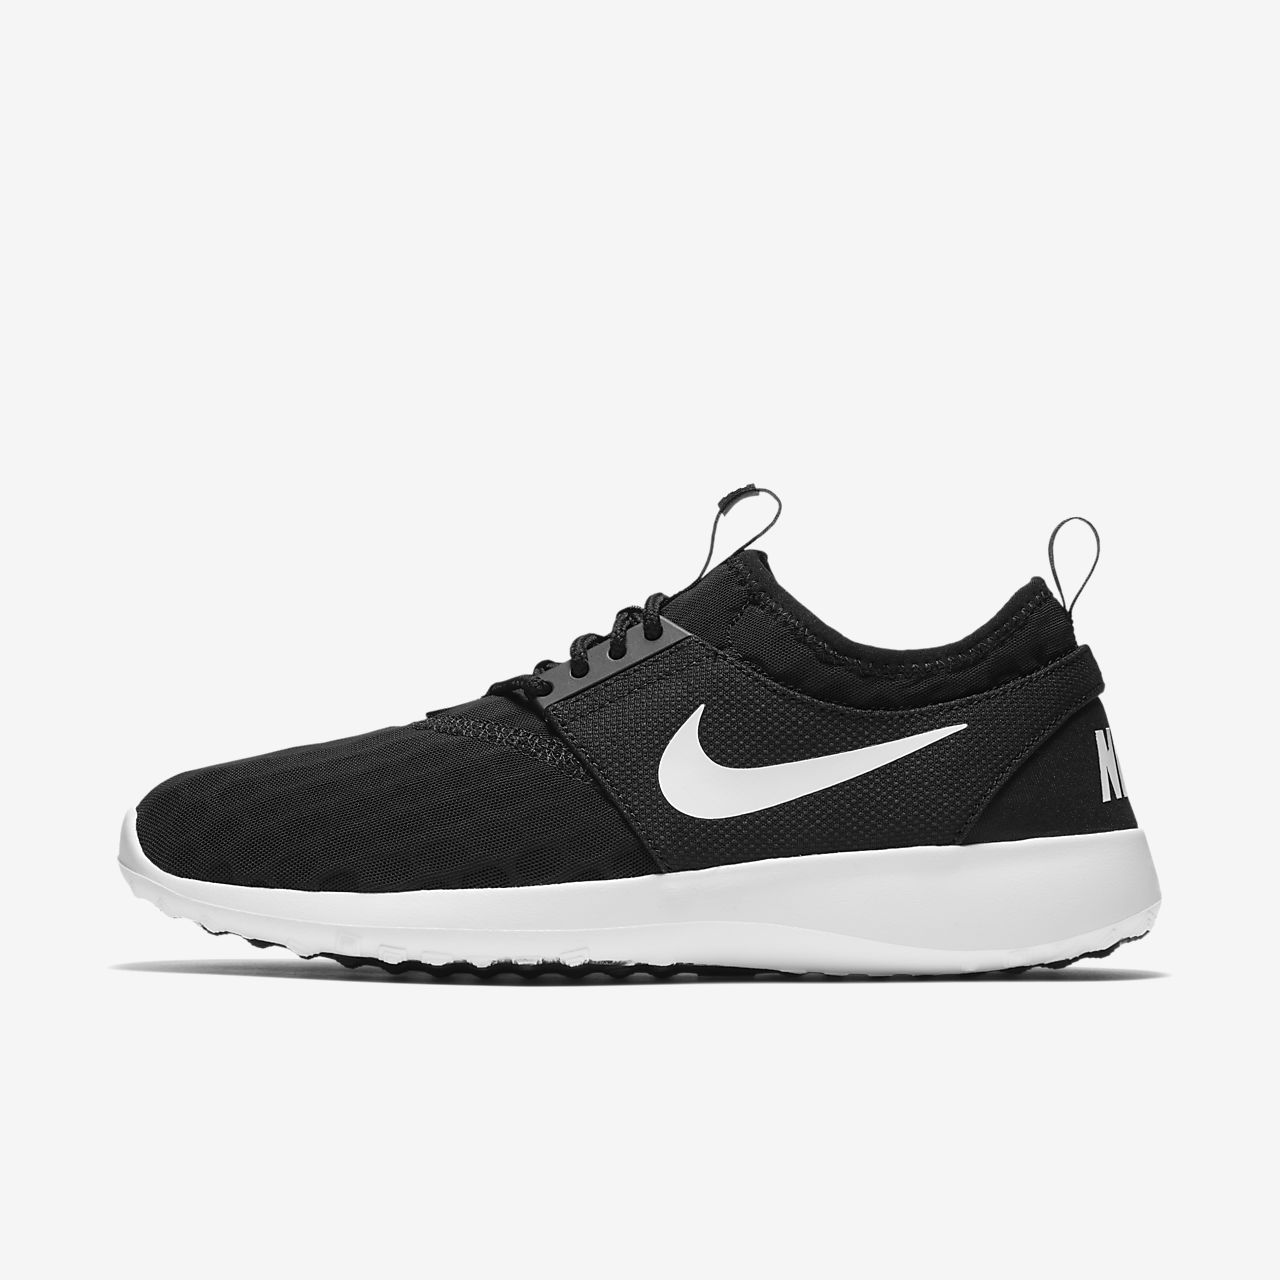 brand new 5a4da b8c5c Low Resolution Nike Juvenate Women s Shoe Nike Juvenate Women s Shoe